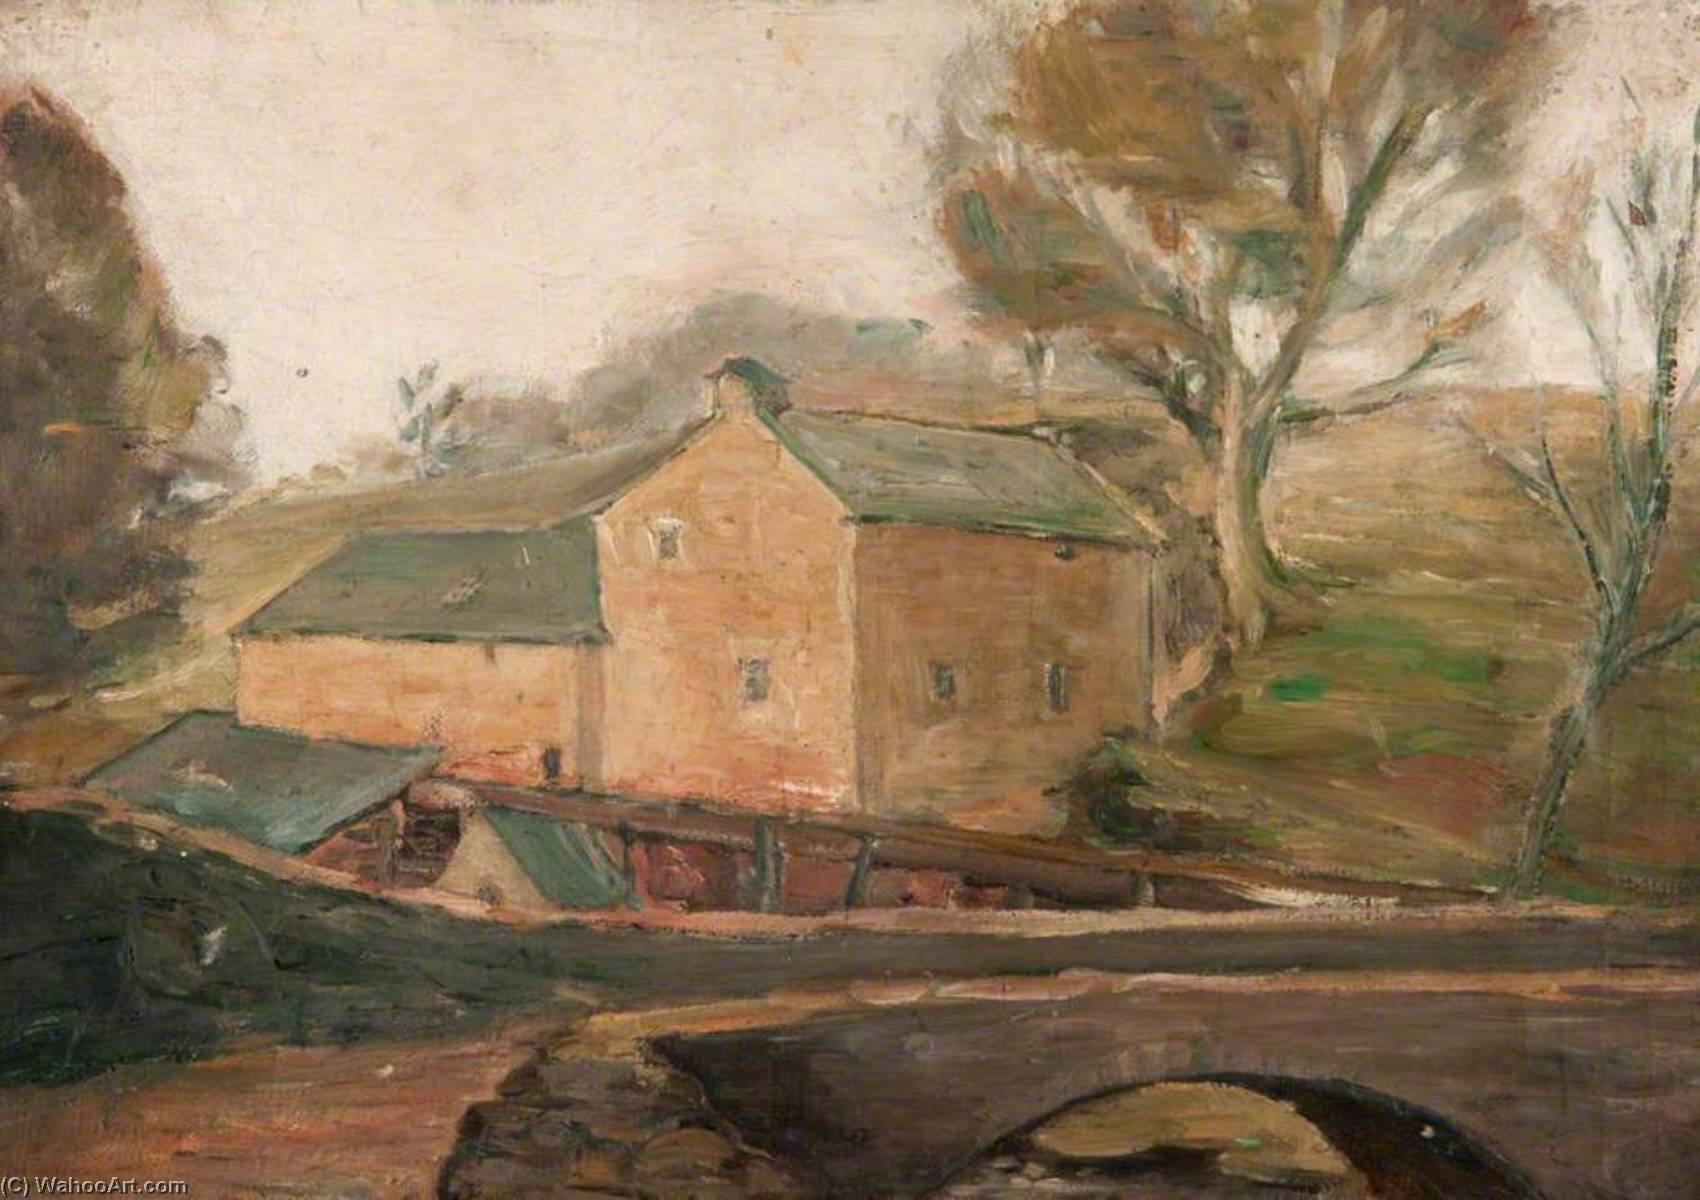 Craigmill and the Packhorse Bridge by John Elliot Maguire | Oil Painting | WahooArt.com